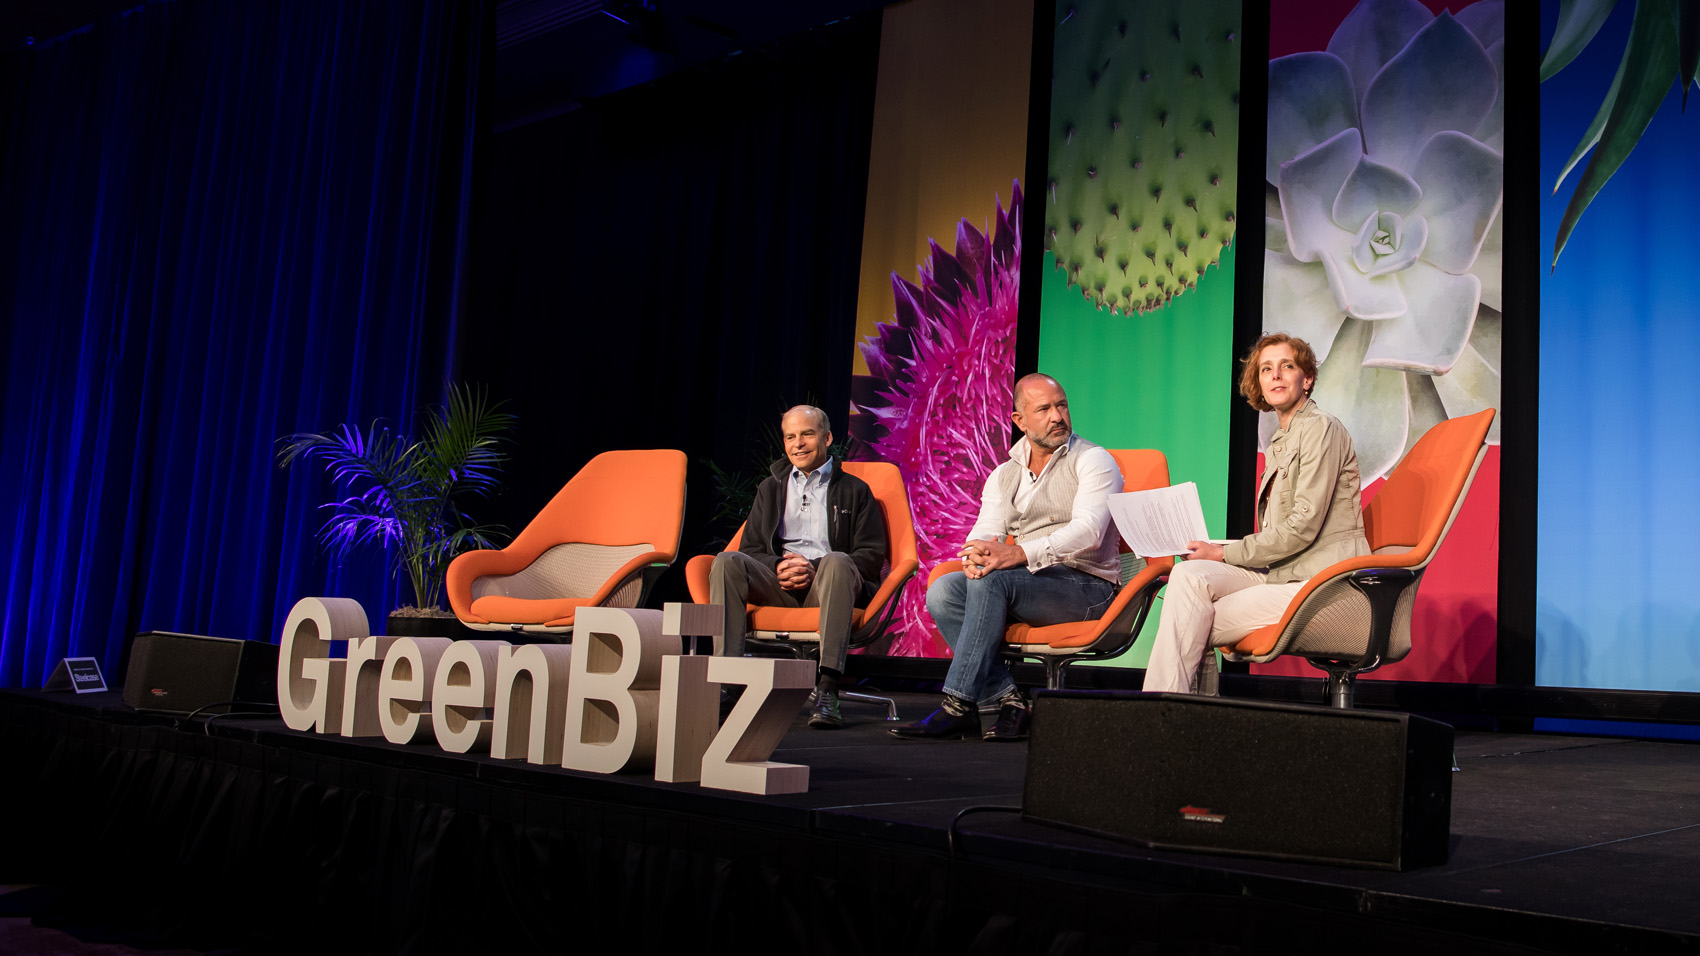 fisk johnson participating in a panel discussion on ocean plastic at green biz